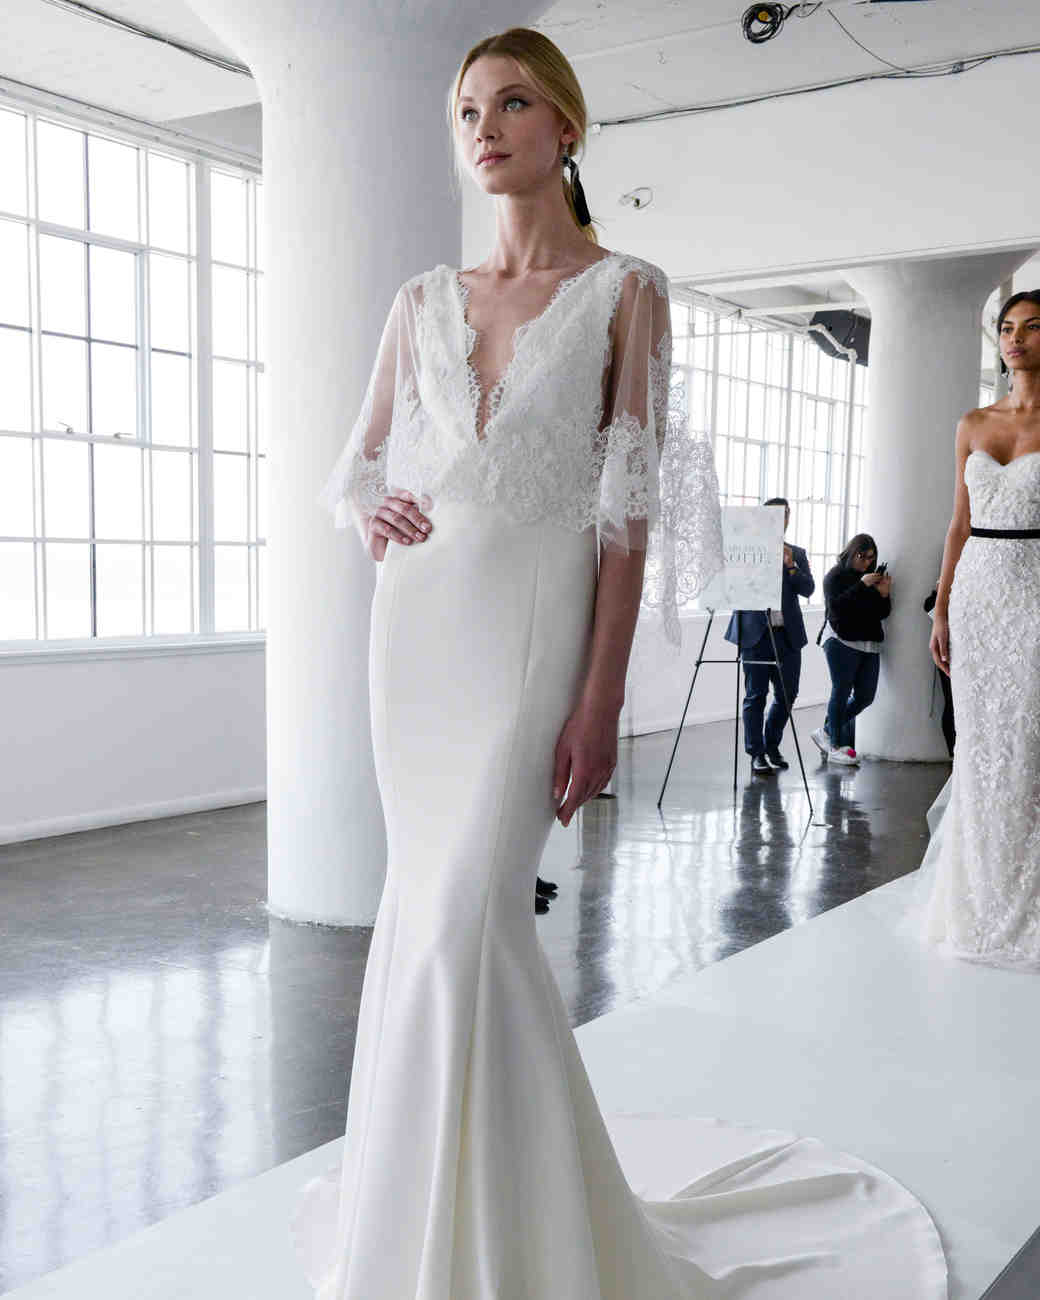 marchesa wedding dresses spring marchesa wedding dresses marchesa spring wedding dress with lace bodice and v neckline